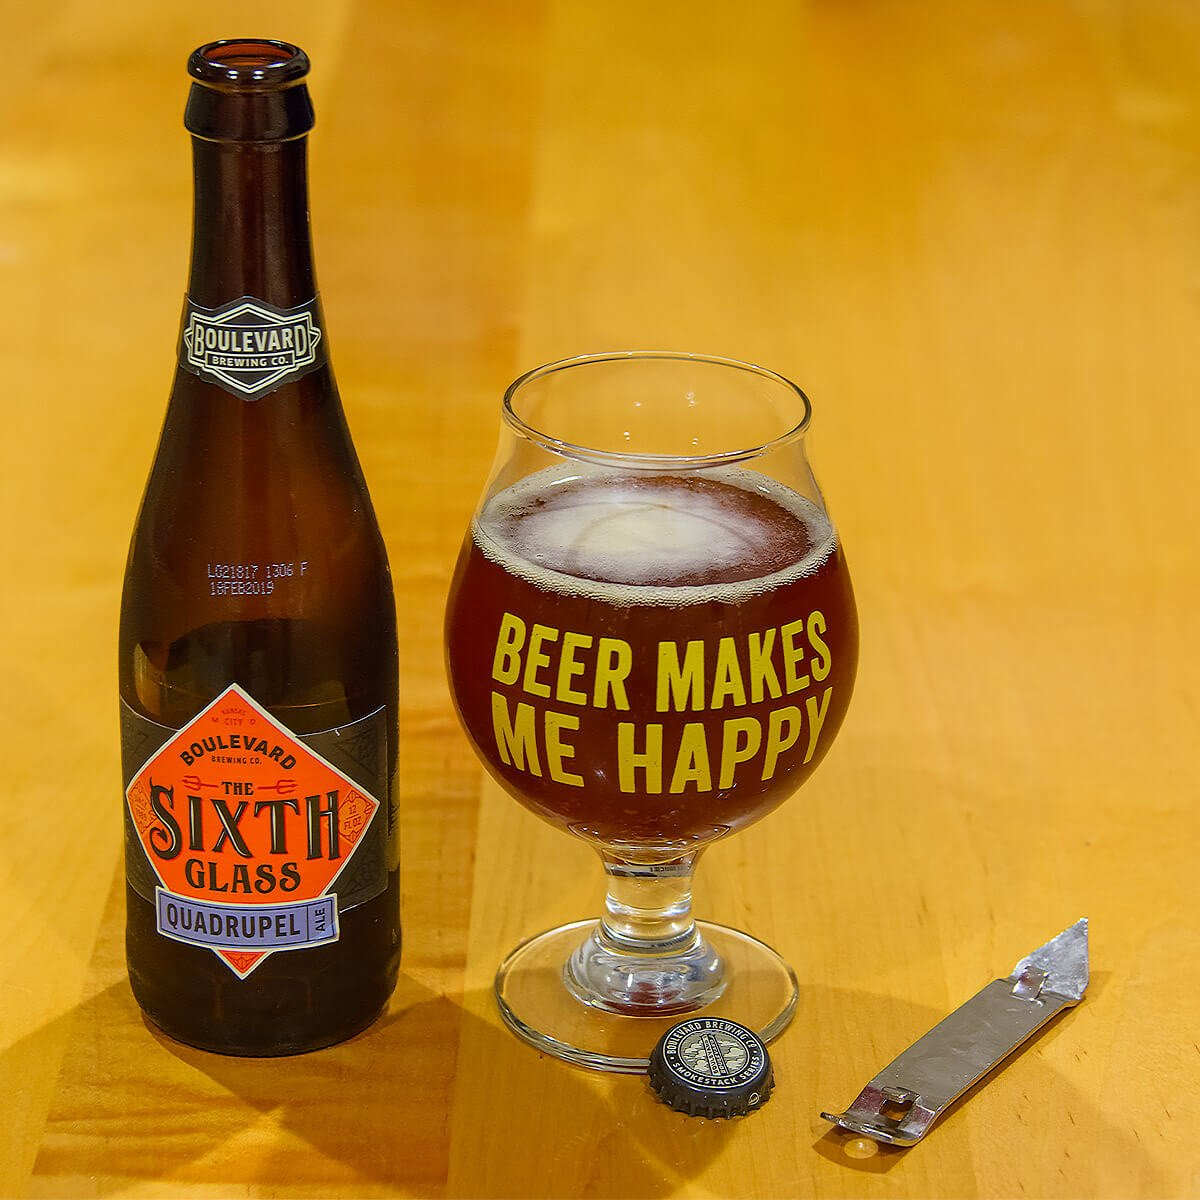 The Sixth Glass, a Belgian-style Quadrupel by Boulevard Brewing Co.